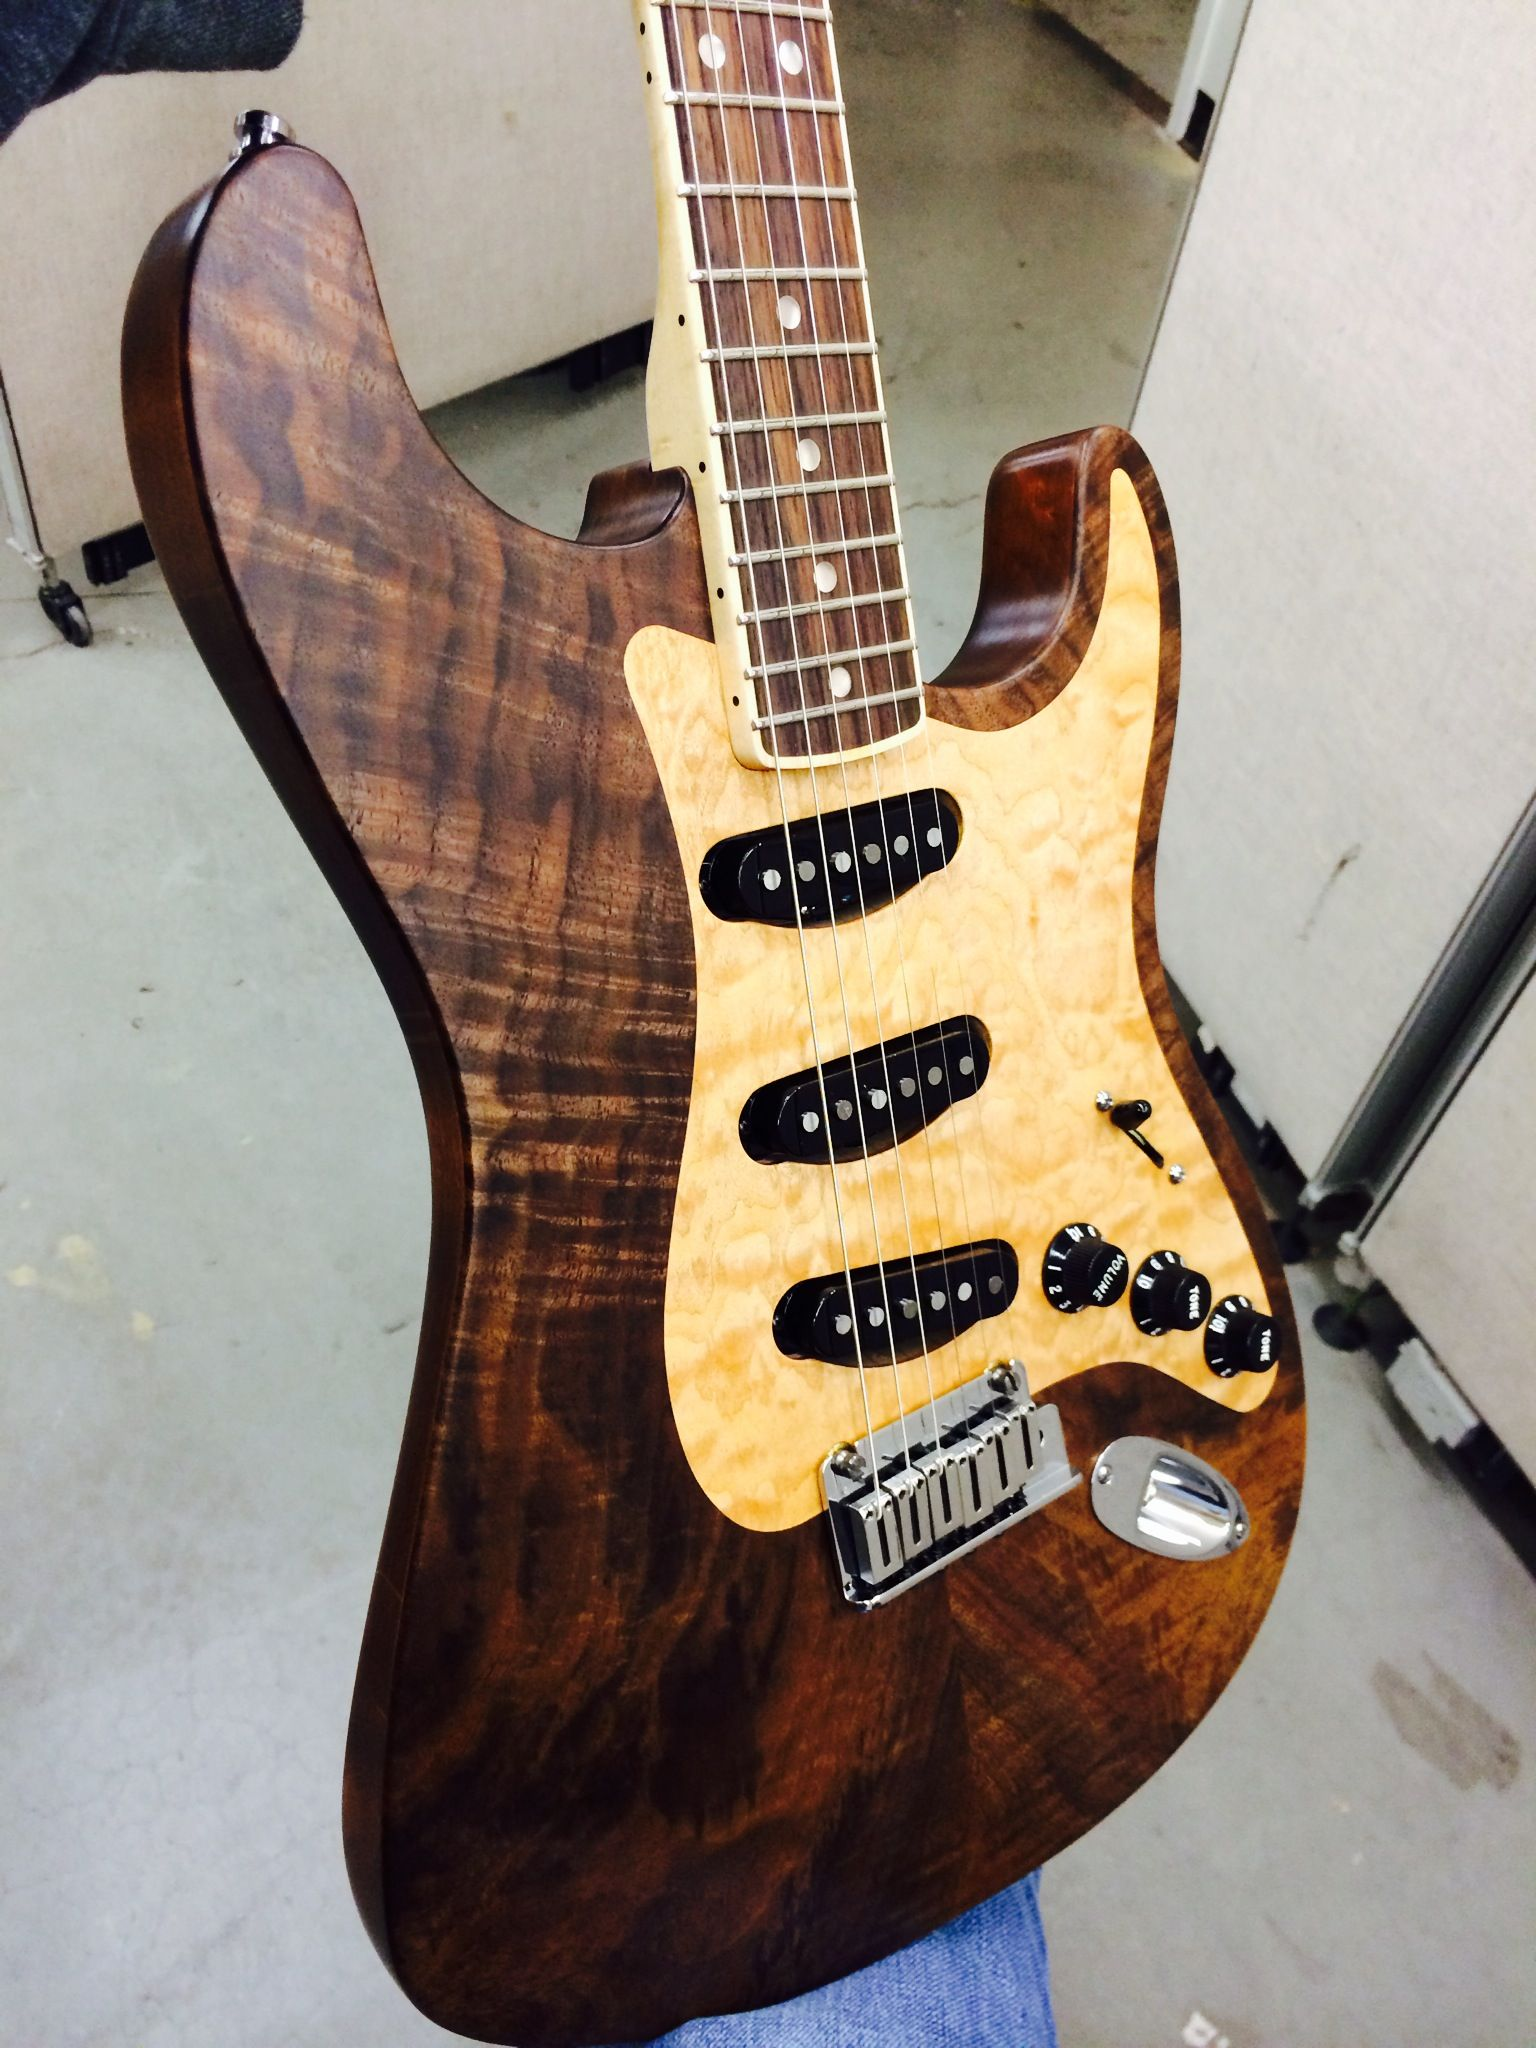 WOW Super rare super limited Fender Stratocaster inlaid pickguard inlaid rosewood fretboard